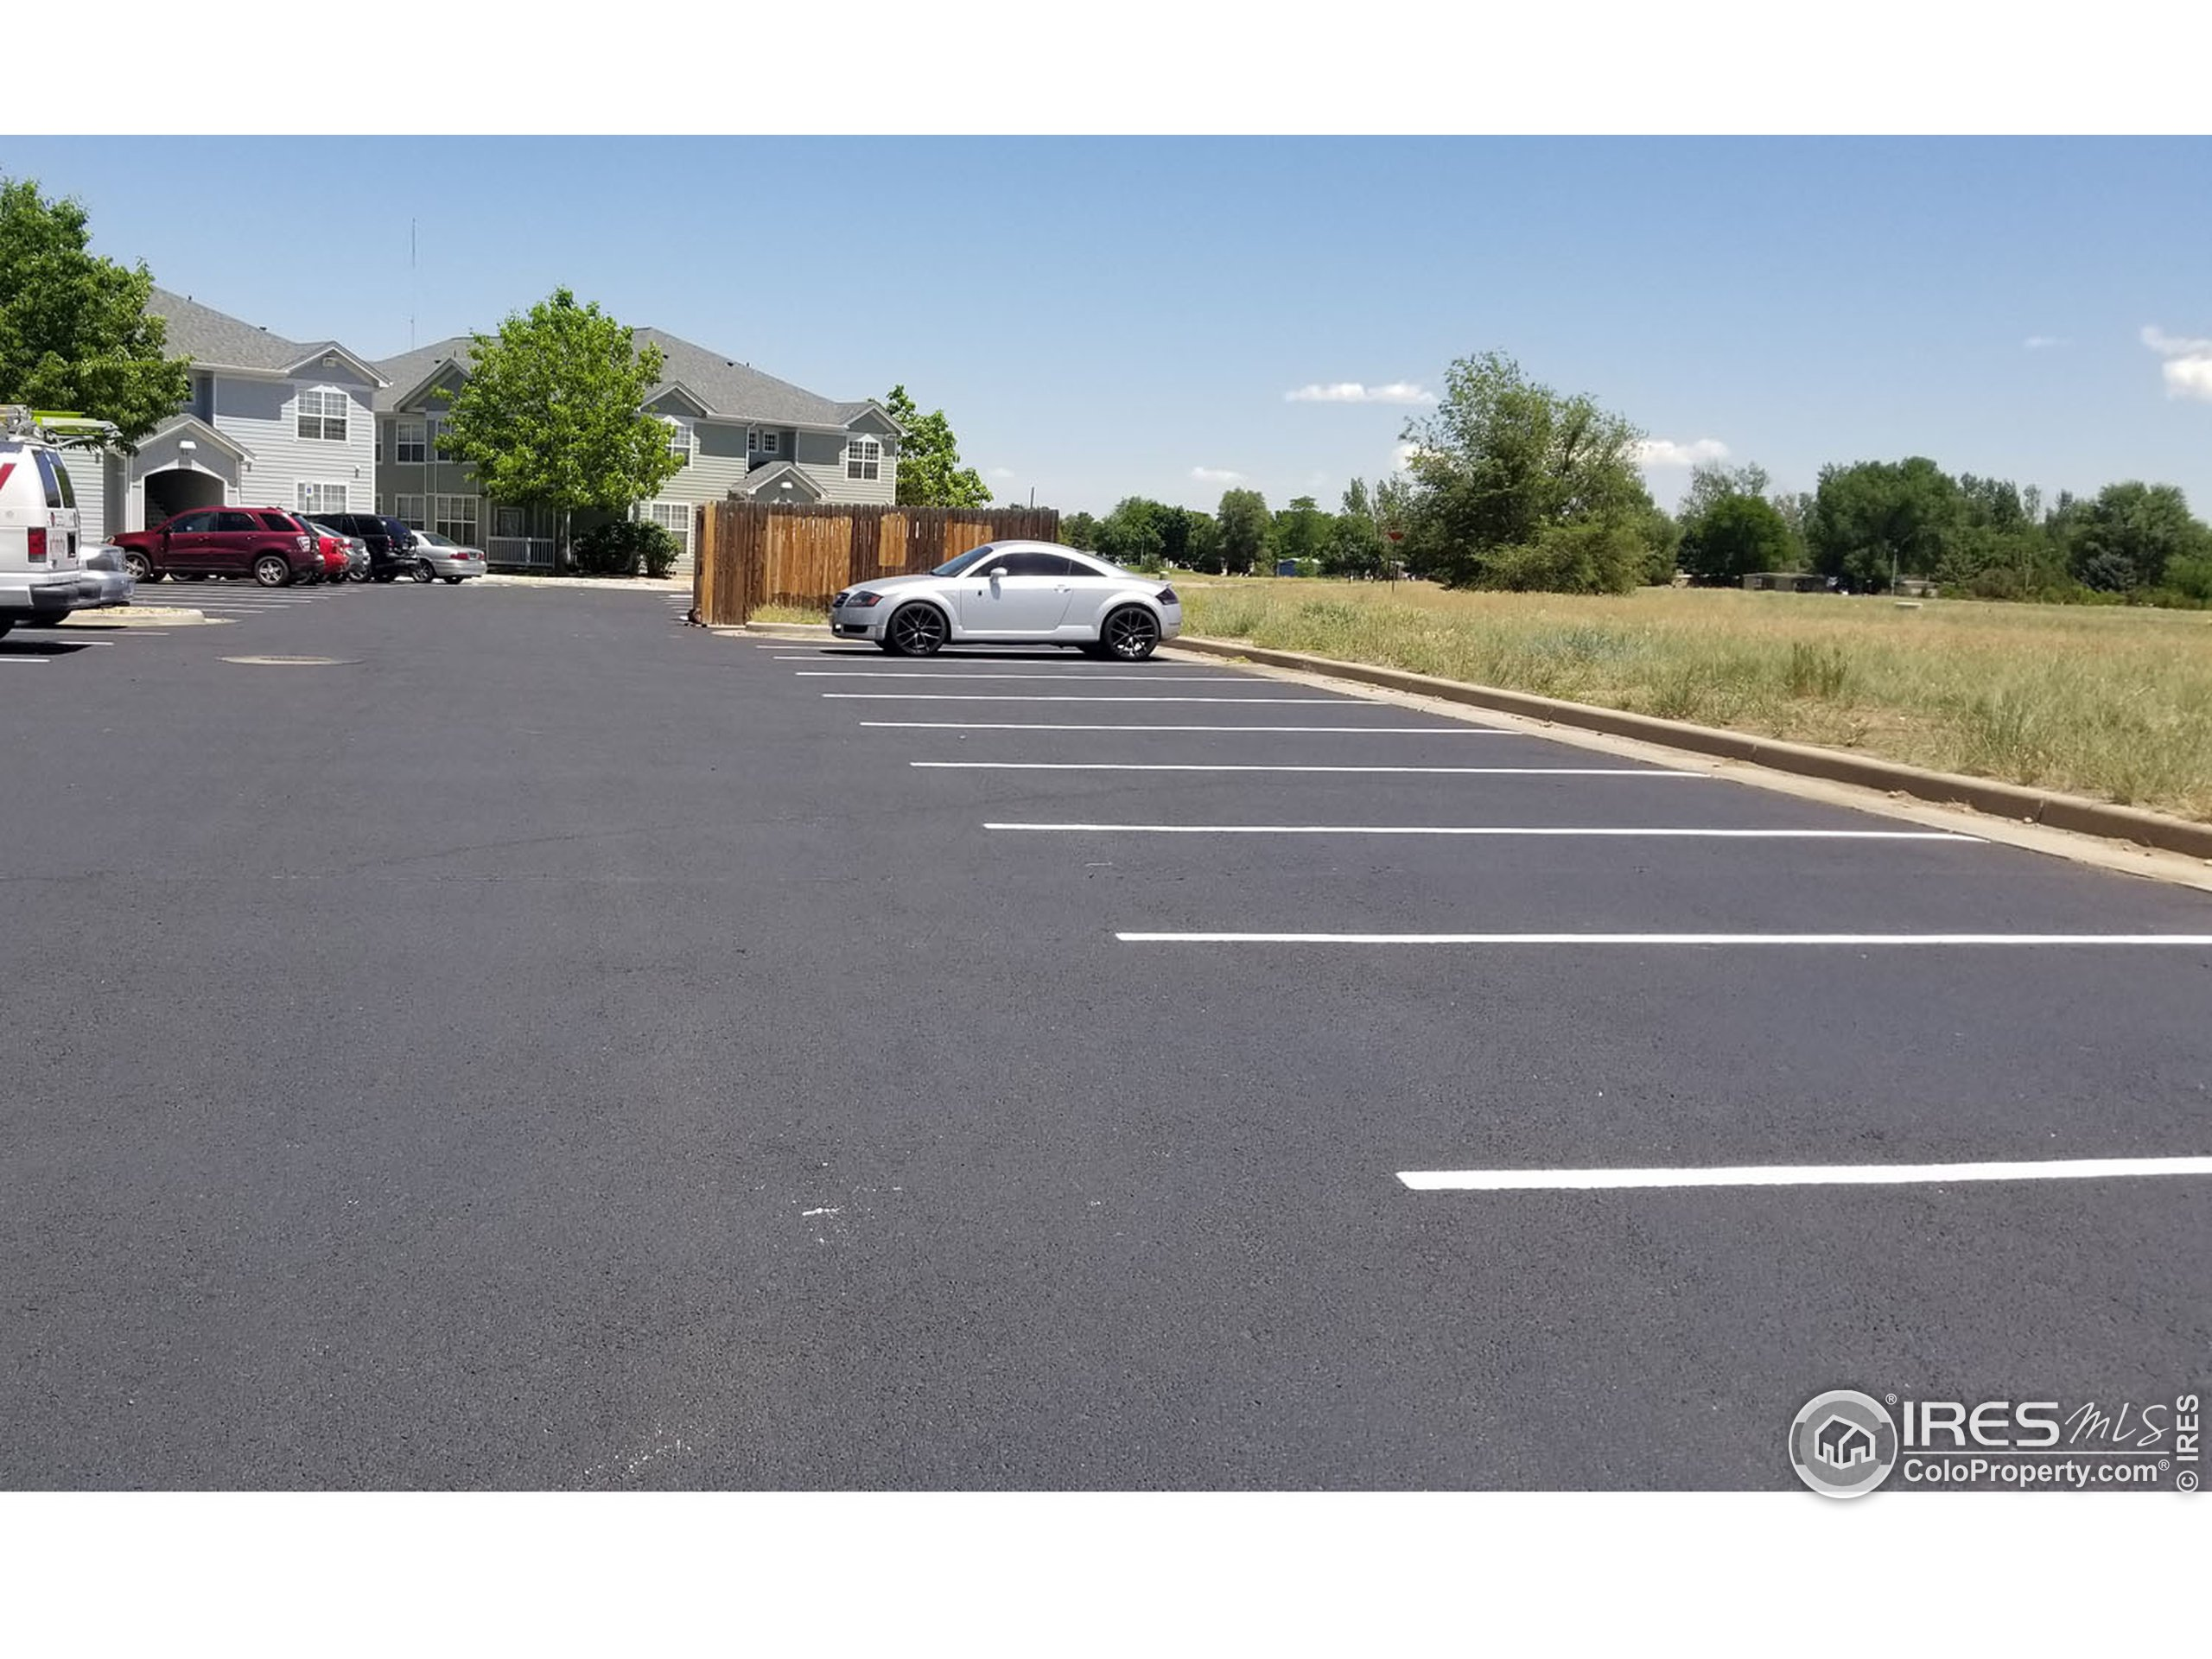 lots of parking for guests